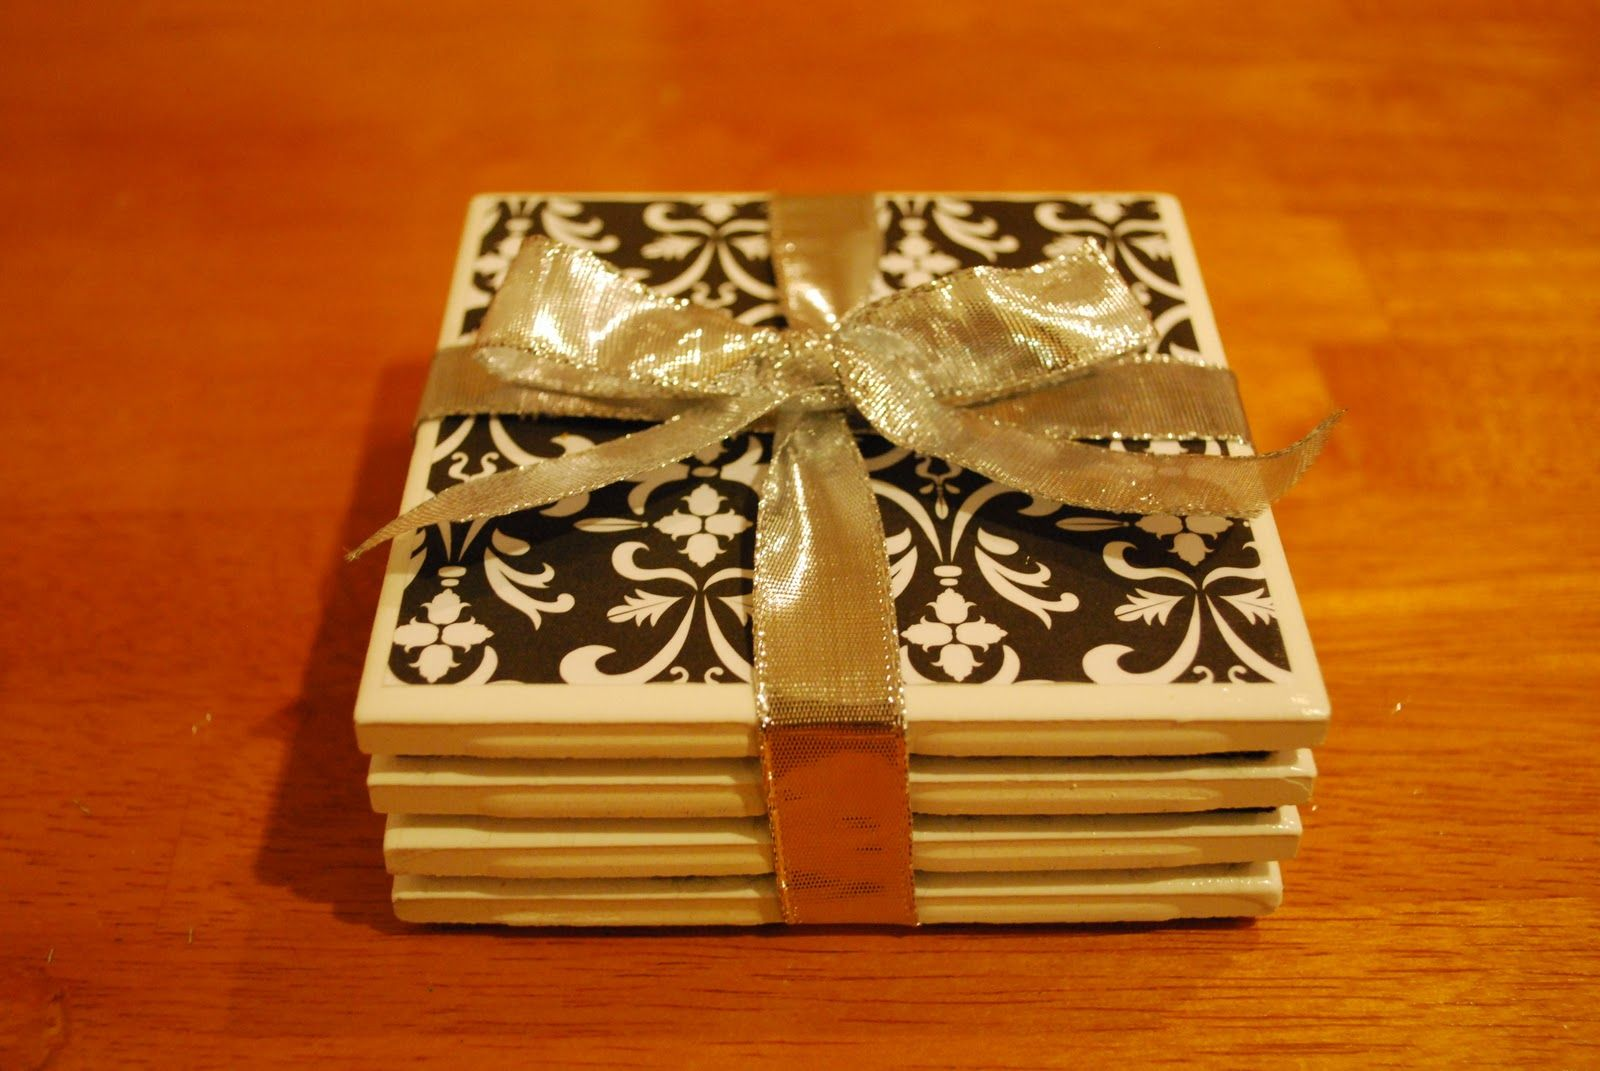 Awesome coasters would make a great inexpensive gift diy gifts